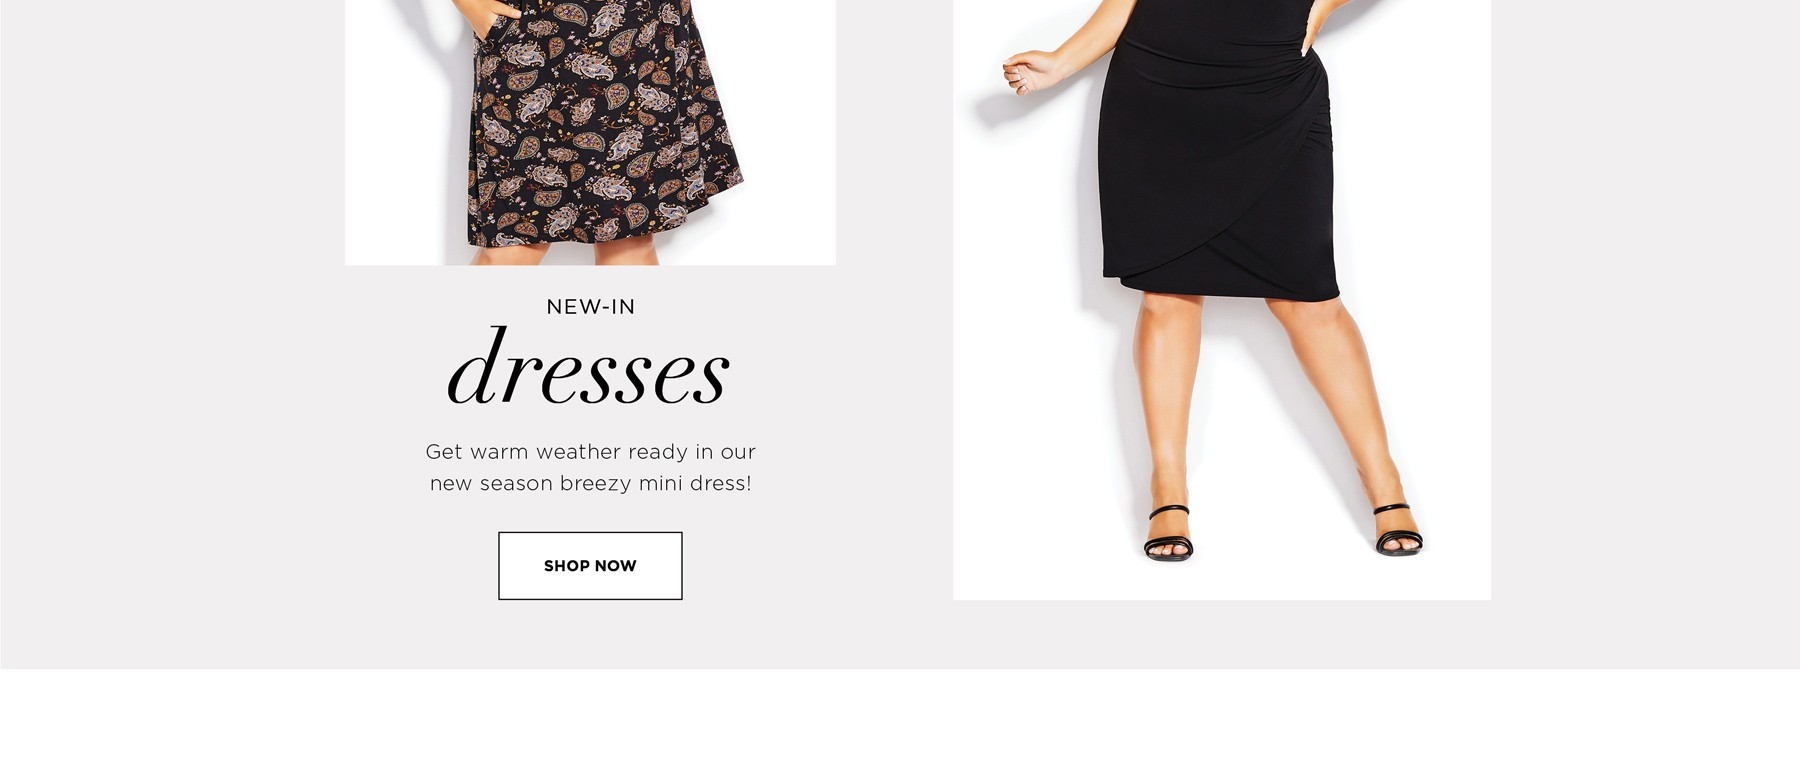 NEW IN - DRESSES - Get warm weather ready in our new season breezy mini dress! - See Terms & Conditions for full details - Prices as marked - SHOP NOW